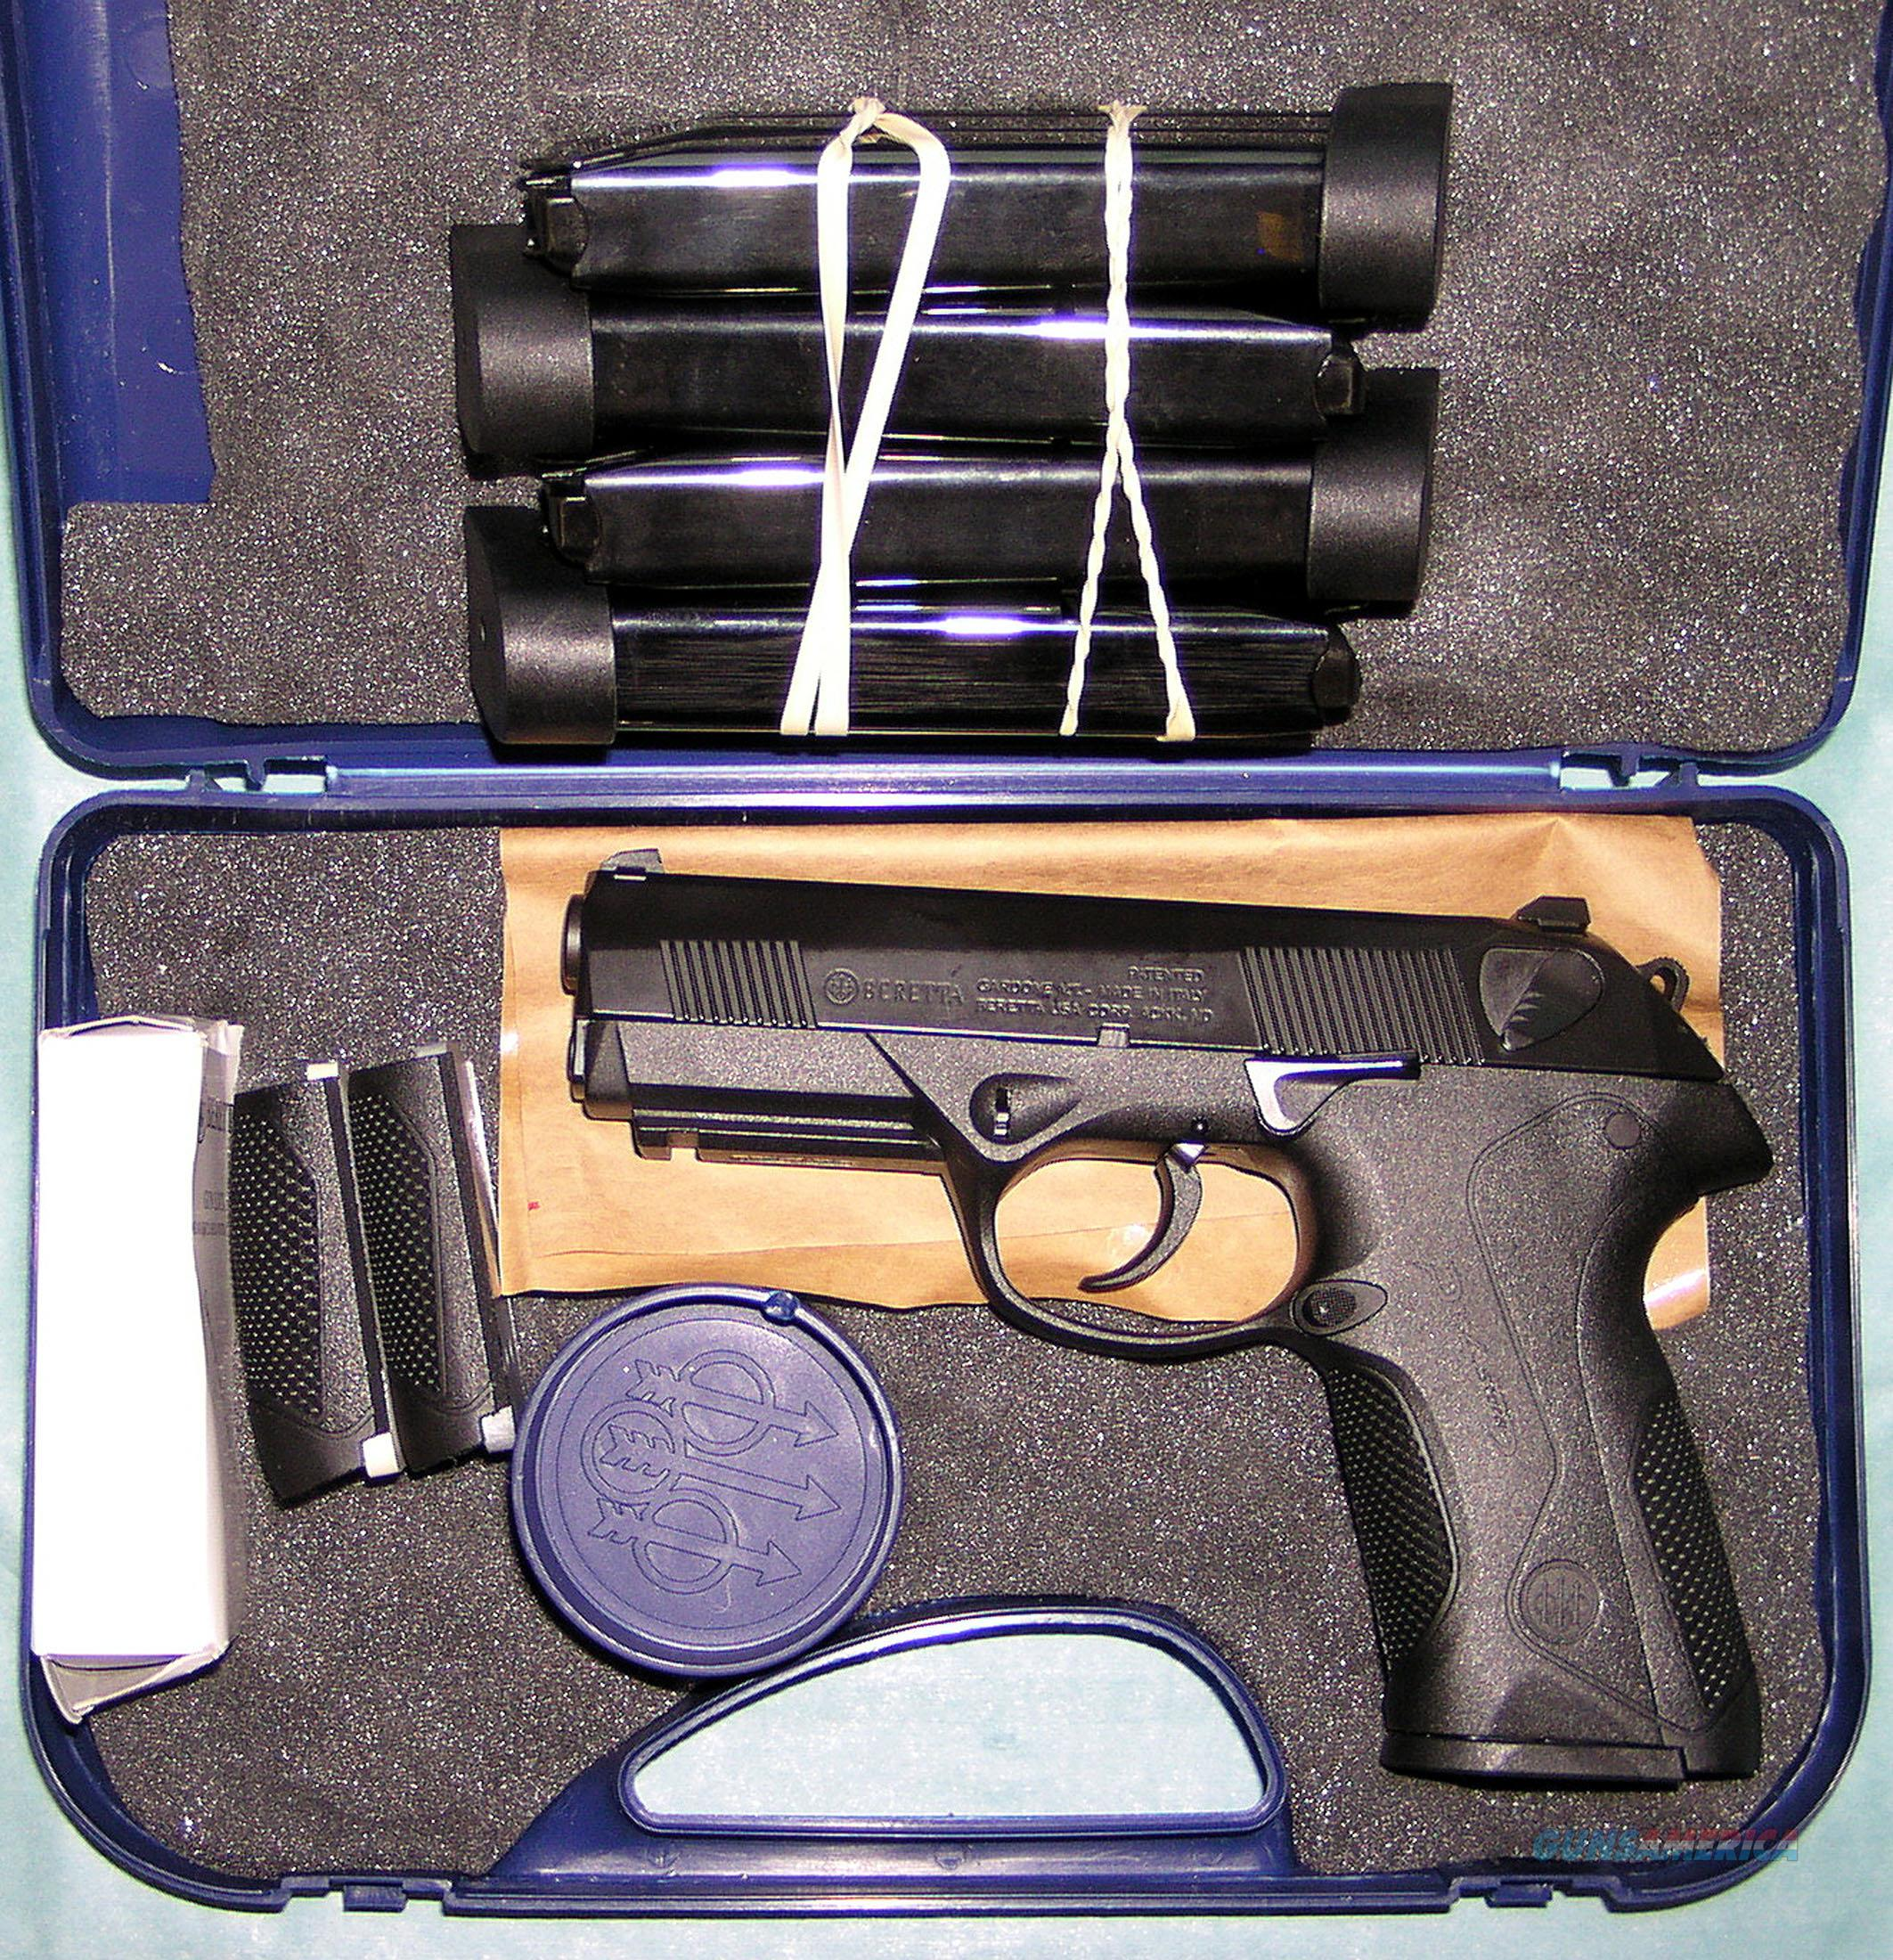 BERETTA PX4 STORM FULL SIZE .45ACP CAL. WITH THREE EXTRA MAGAZINES  Guns > Pistols > Beretta Pistols > Polymer Frame